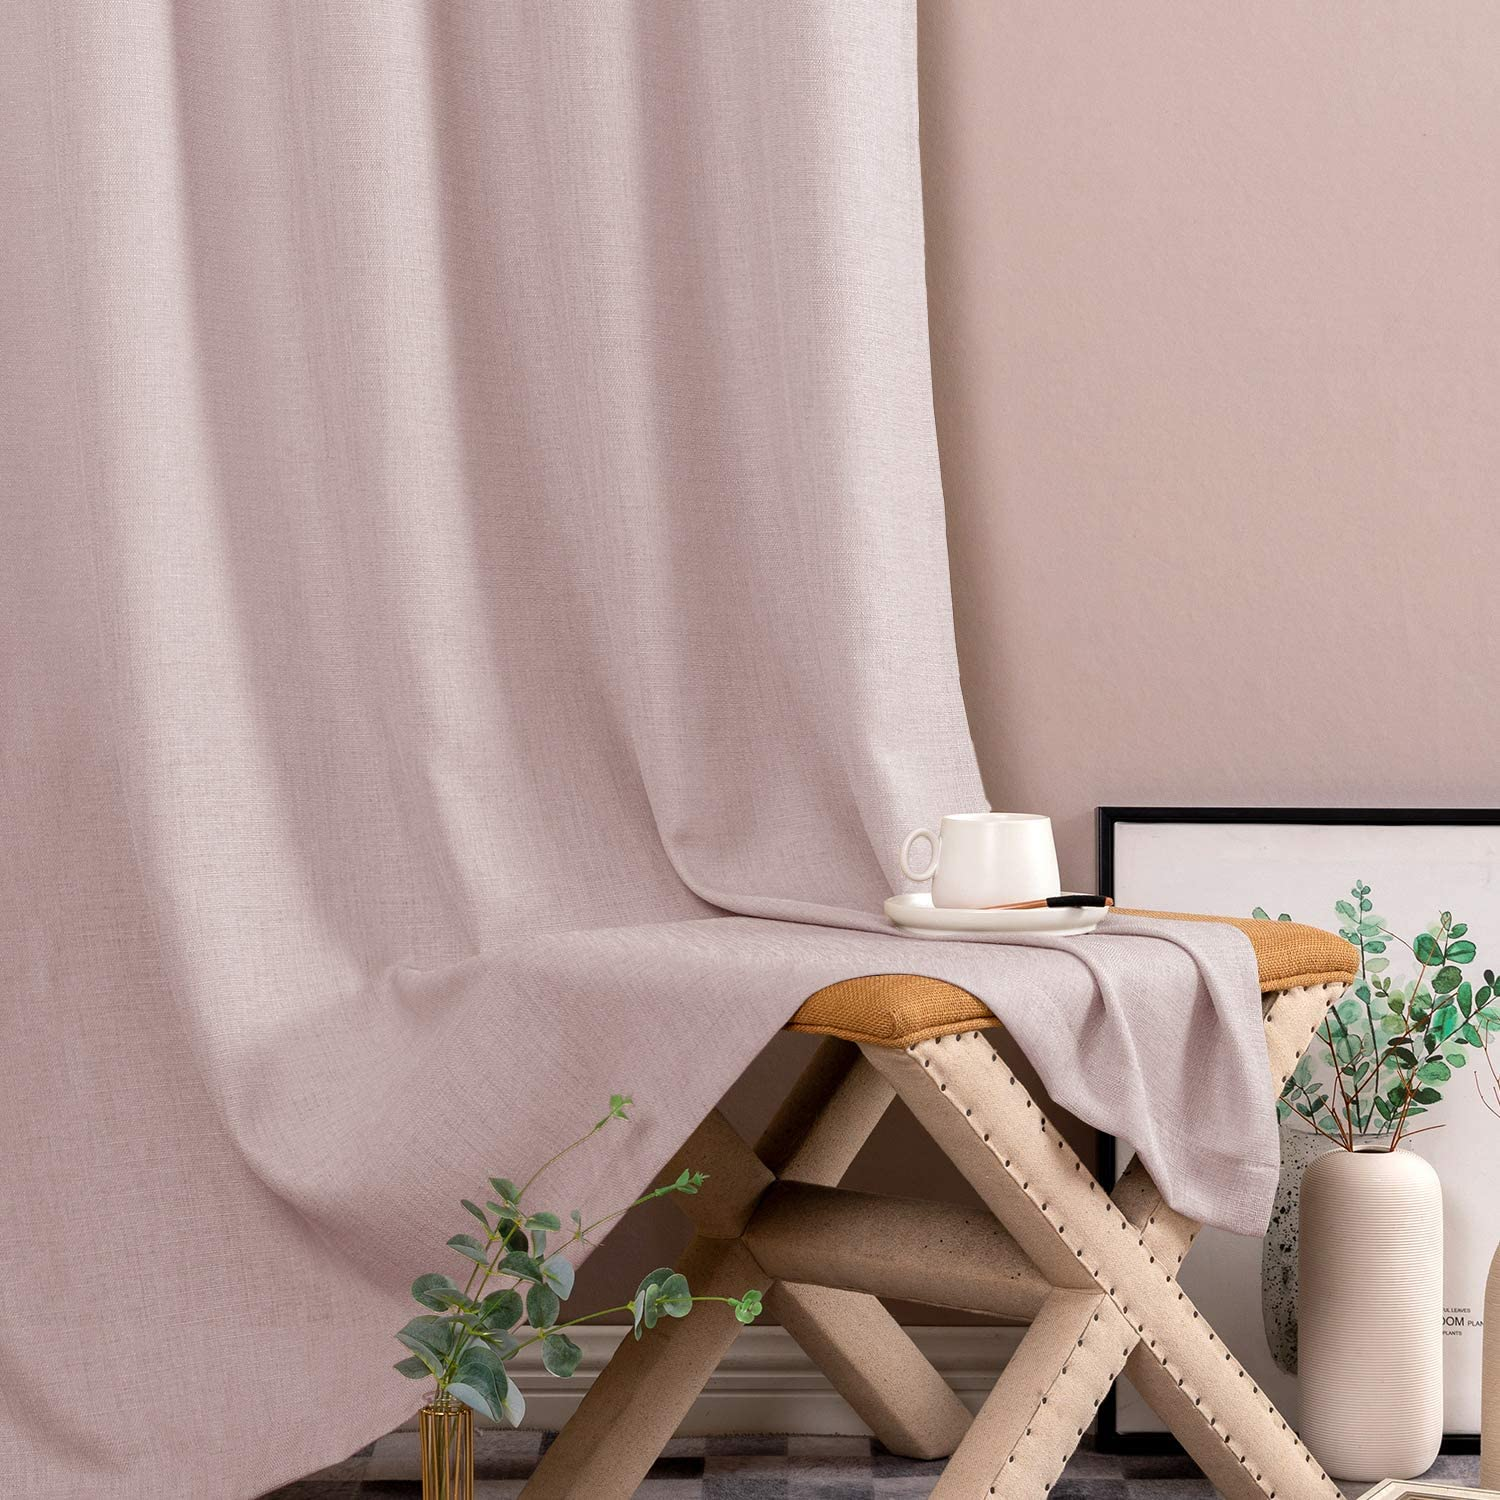 jinchan Semi Sheer Curtains for Bedroom Privacy Casual Weave Window Curtains for Living Room Rod Pocket Linen Look Curtains 2 Panels 63